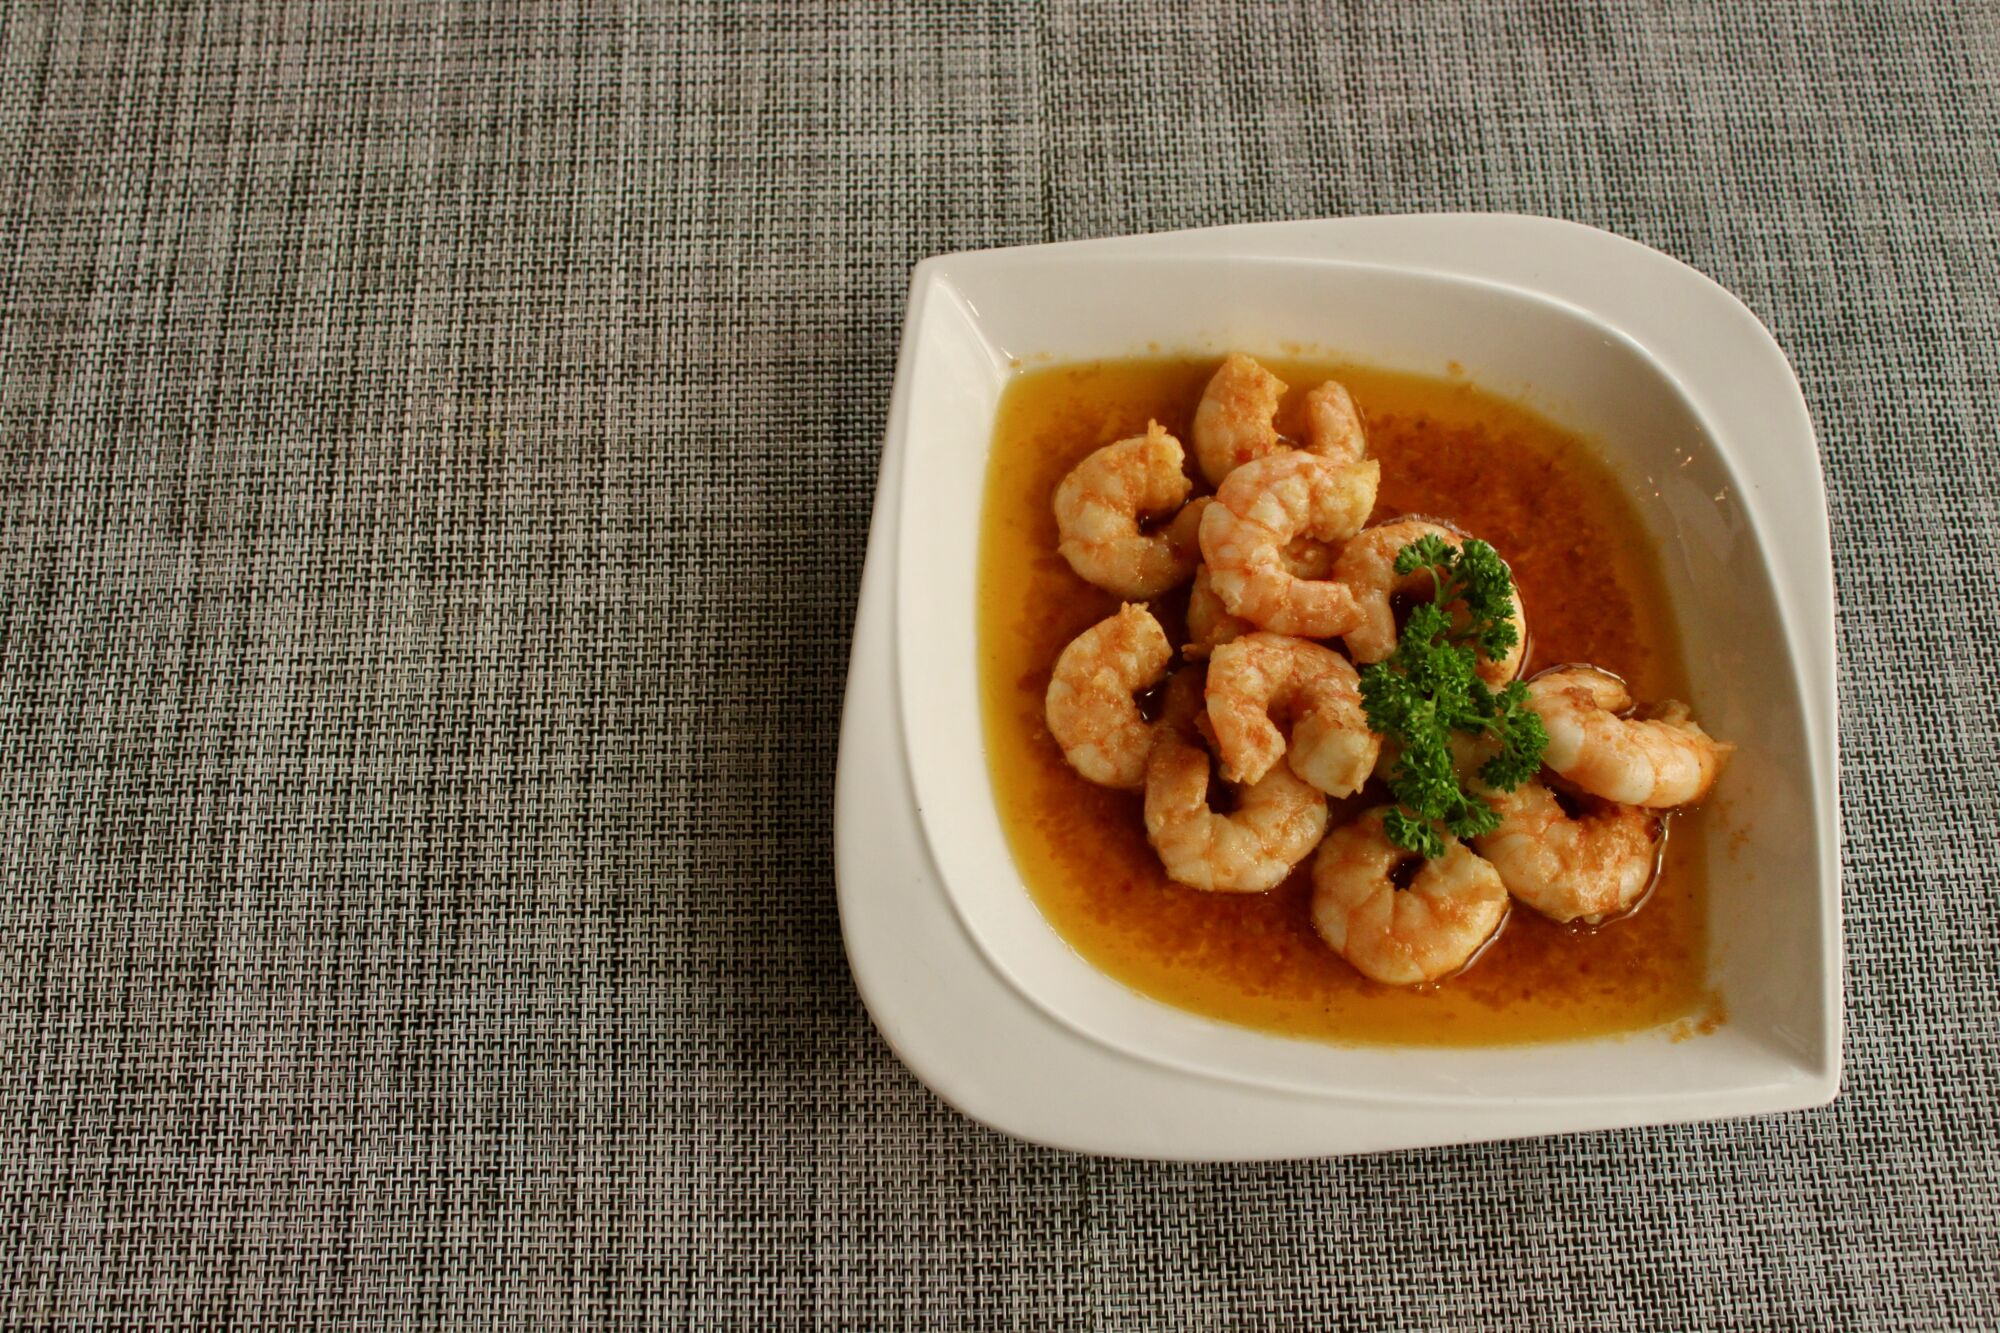 mariazinha portuguese restaurant macau sauteed shrimp in olive oil and garlic and spicy sauce